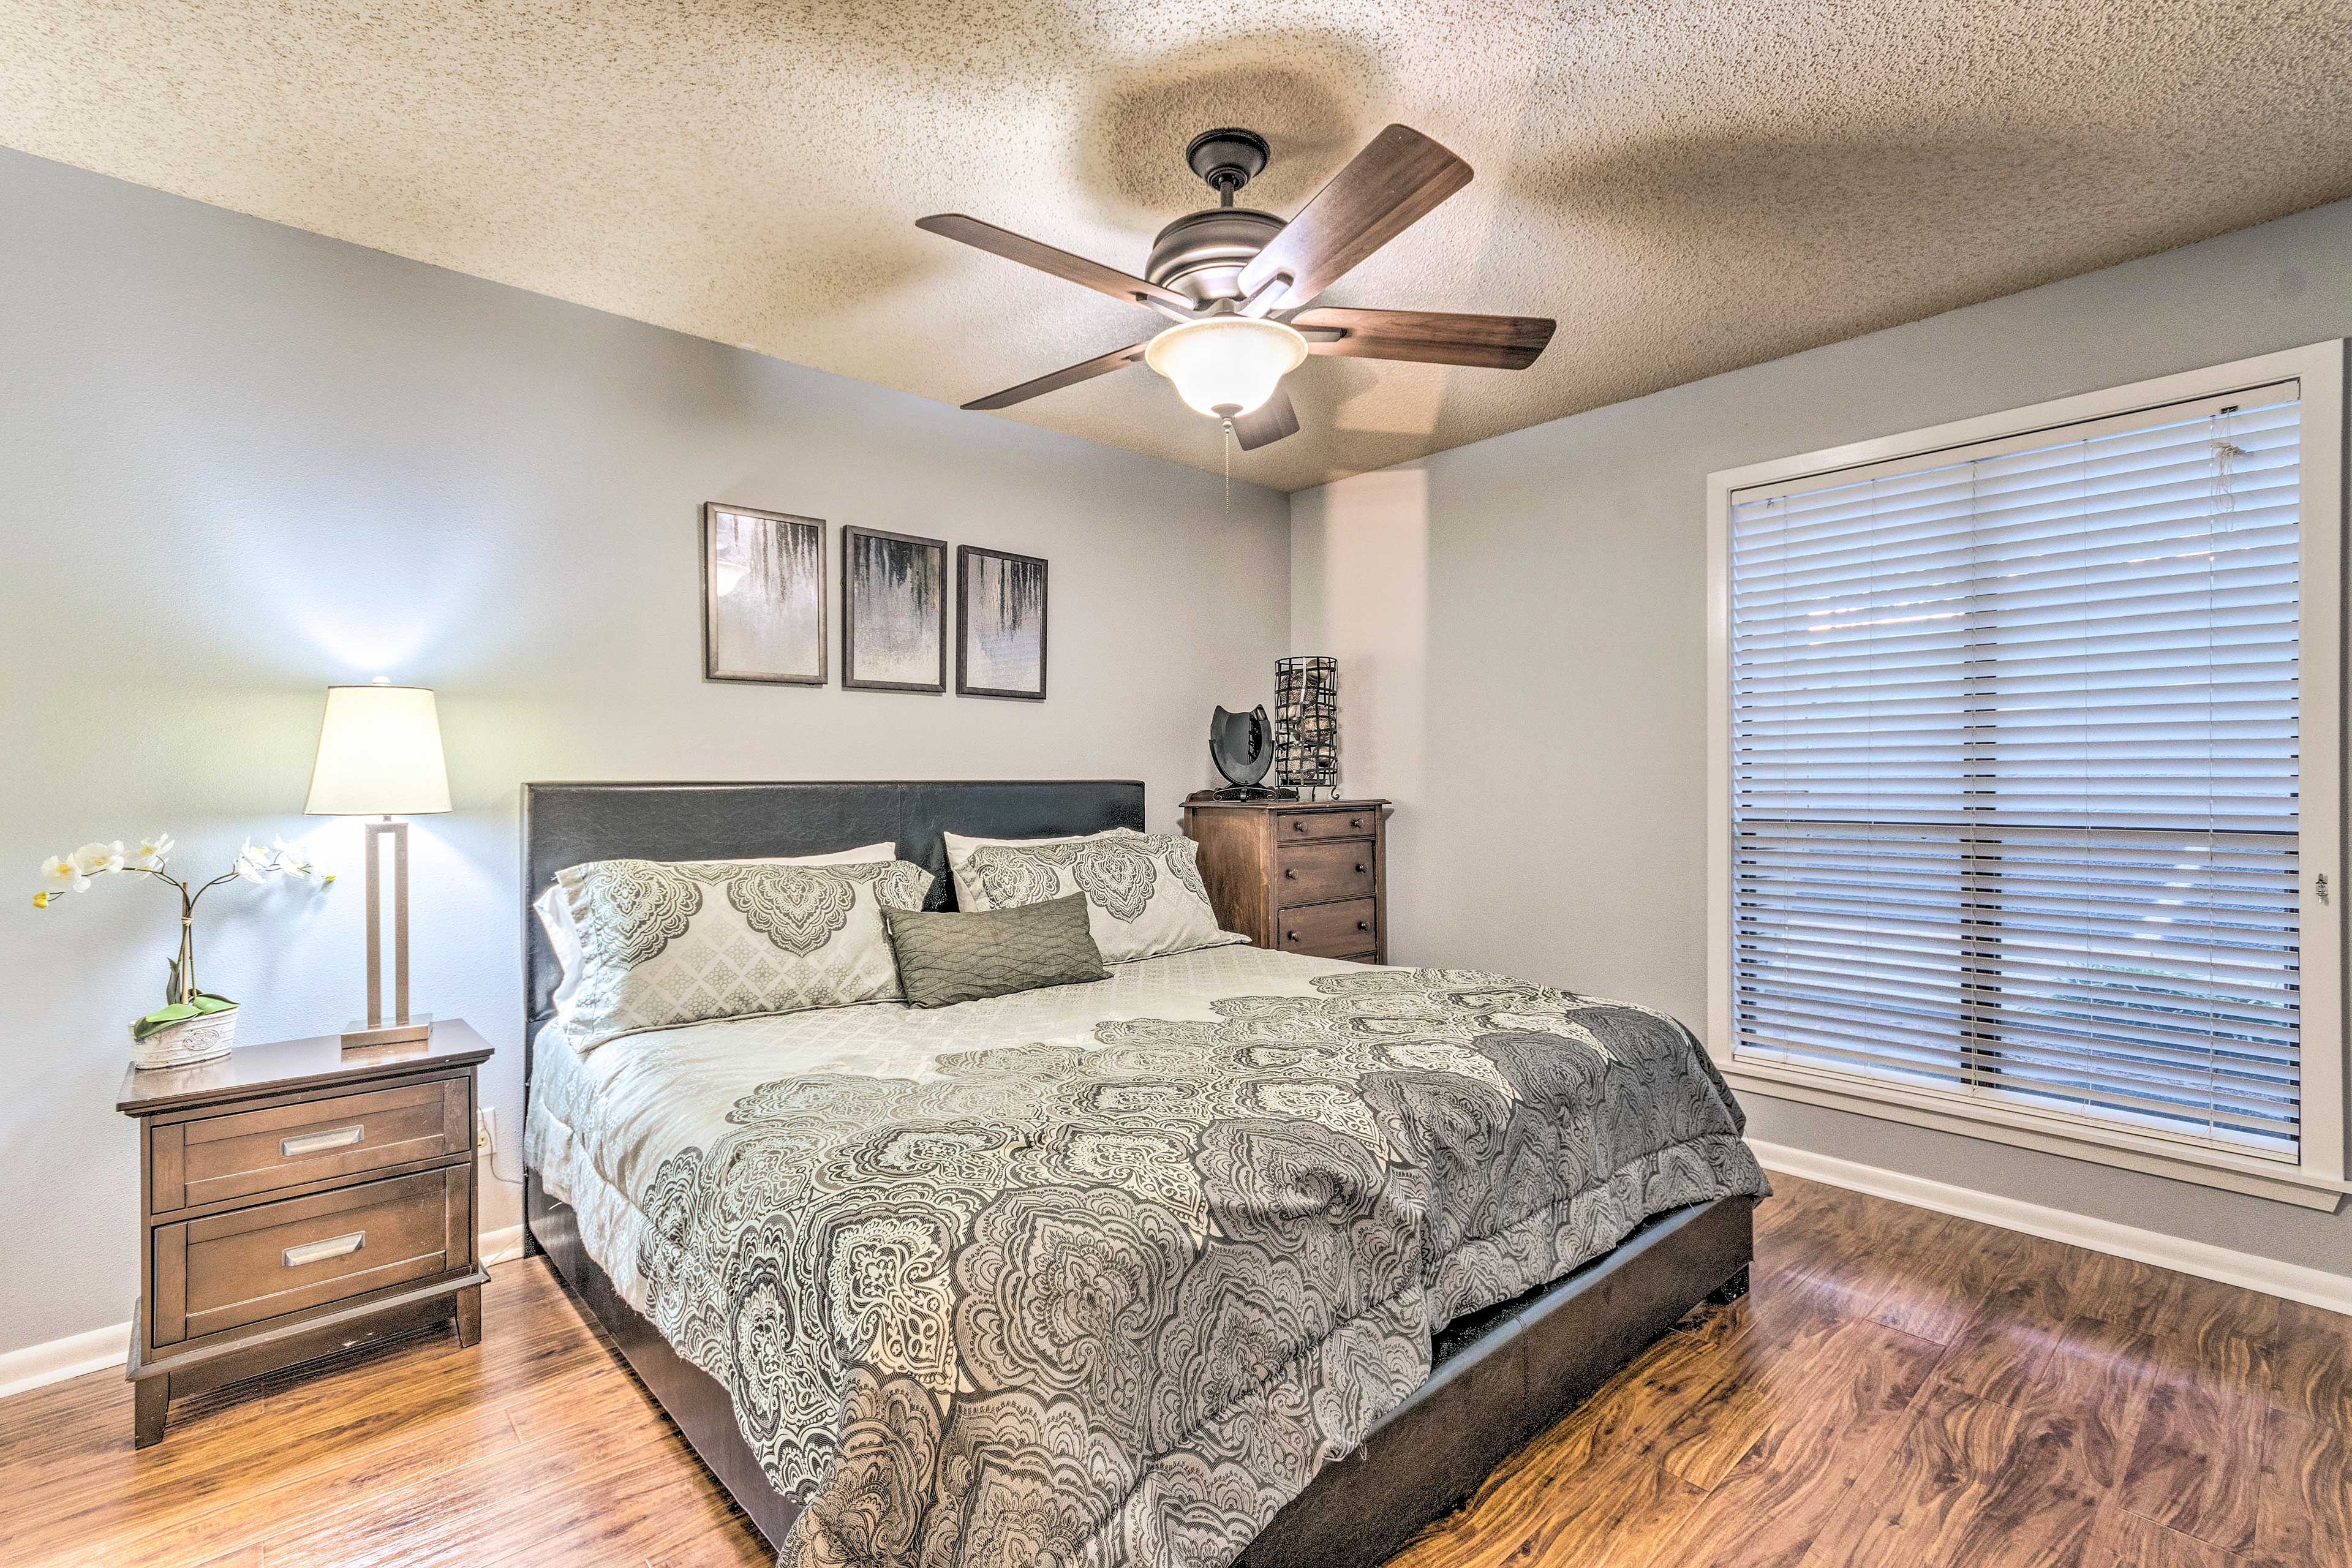 The second bedroom stands apart with a king-sized bed.